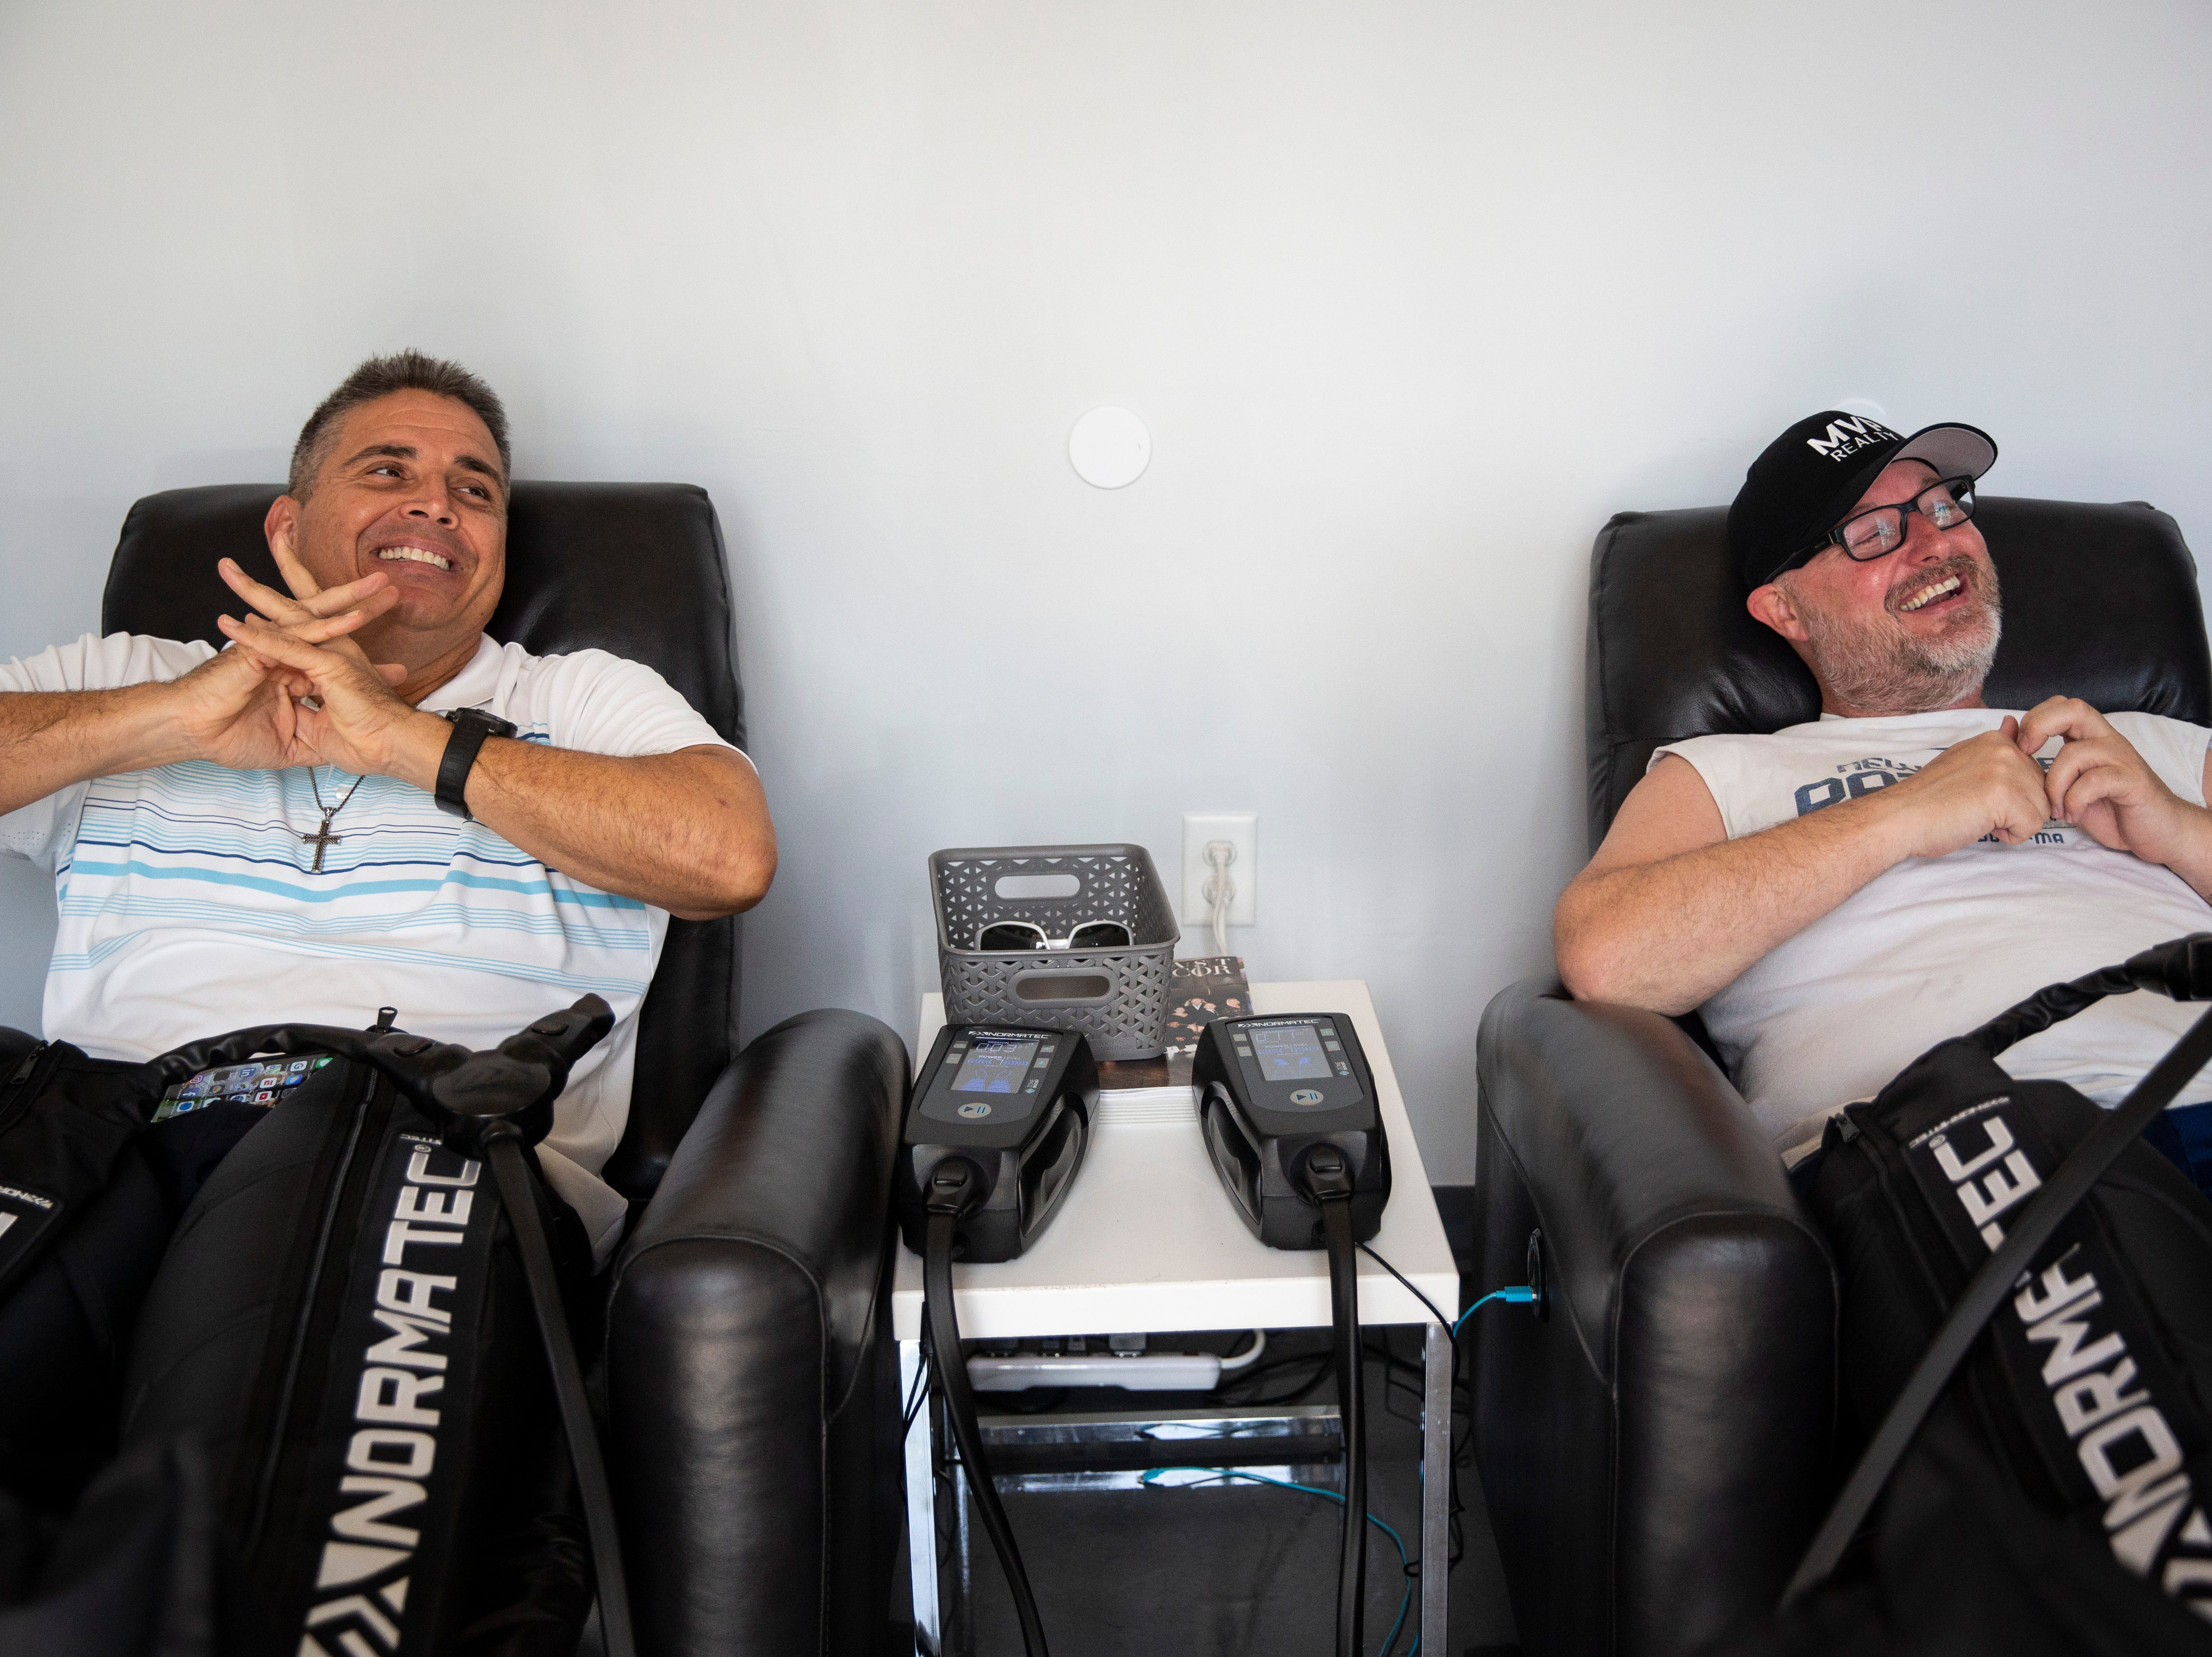 Patrick Dearborn, left, and Derek Carlson, right, receive NormaTec compression after their full body cryotherapy on Thursday, Nov. 8, 2018, at US Cryotherapy in North Naples. Carlson and Dearborn have known each other for over a decade, and Carlson is the one who pushed Dearborn to start receiving cryotherapy.